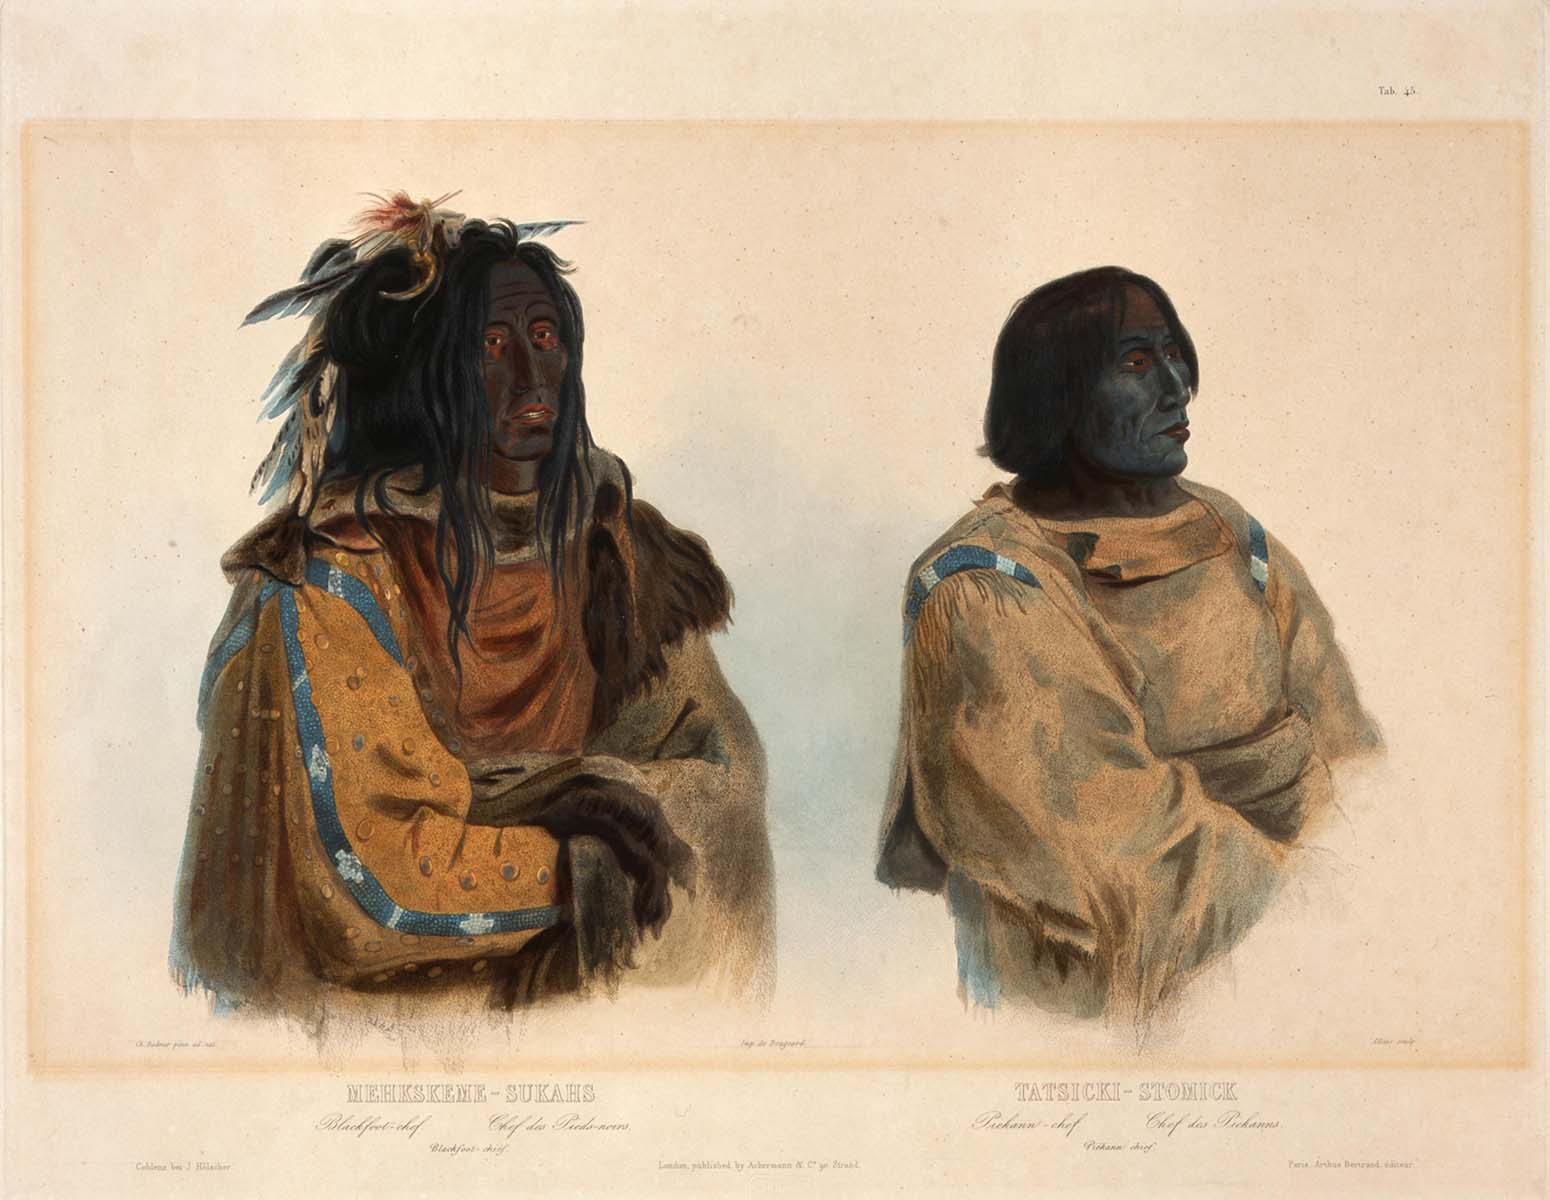 """Karl Bodmer (1809-1893). """"Blackfoot Chief and Piegan Chief,"""" ca. 1840-1842. Aquatint and engraving on paper. Gift of Clara S. Peck. 21.69.75"""